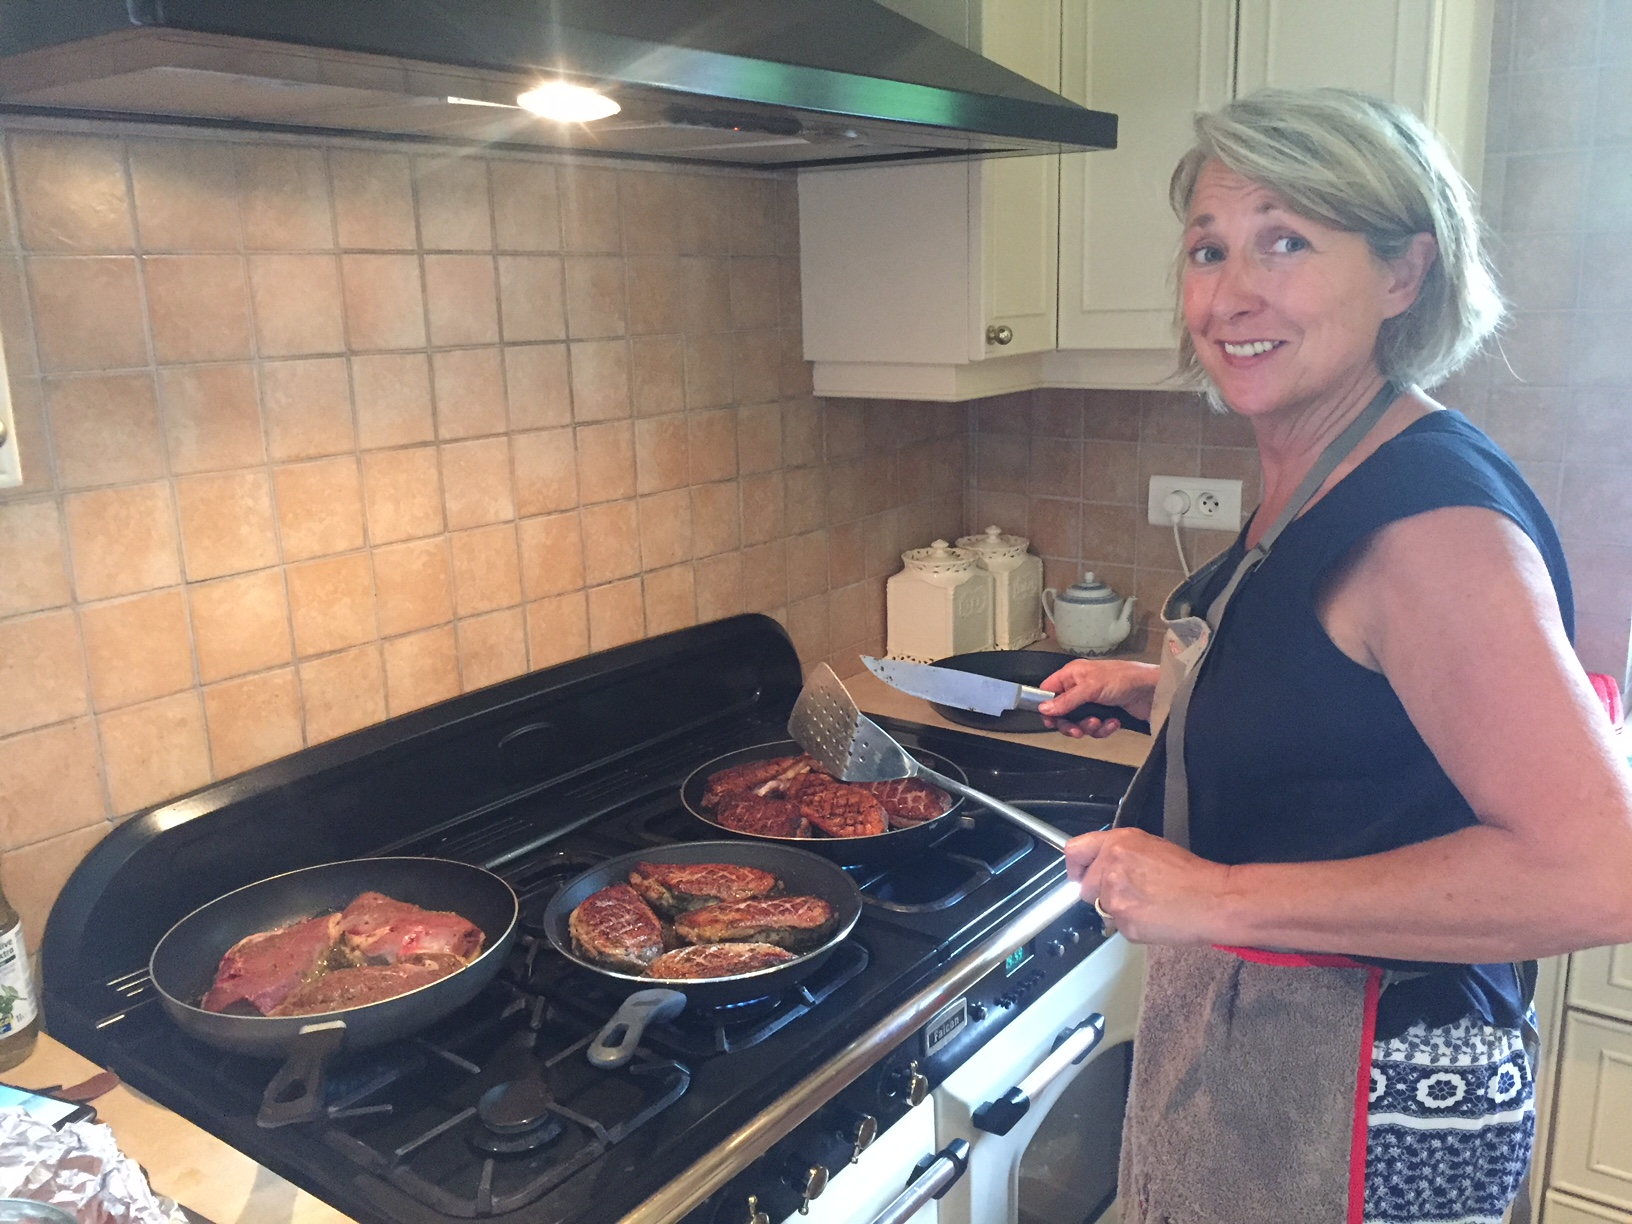 Angela Turner – Head Chef/Co-founder